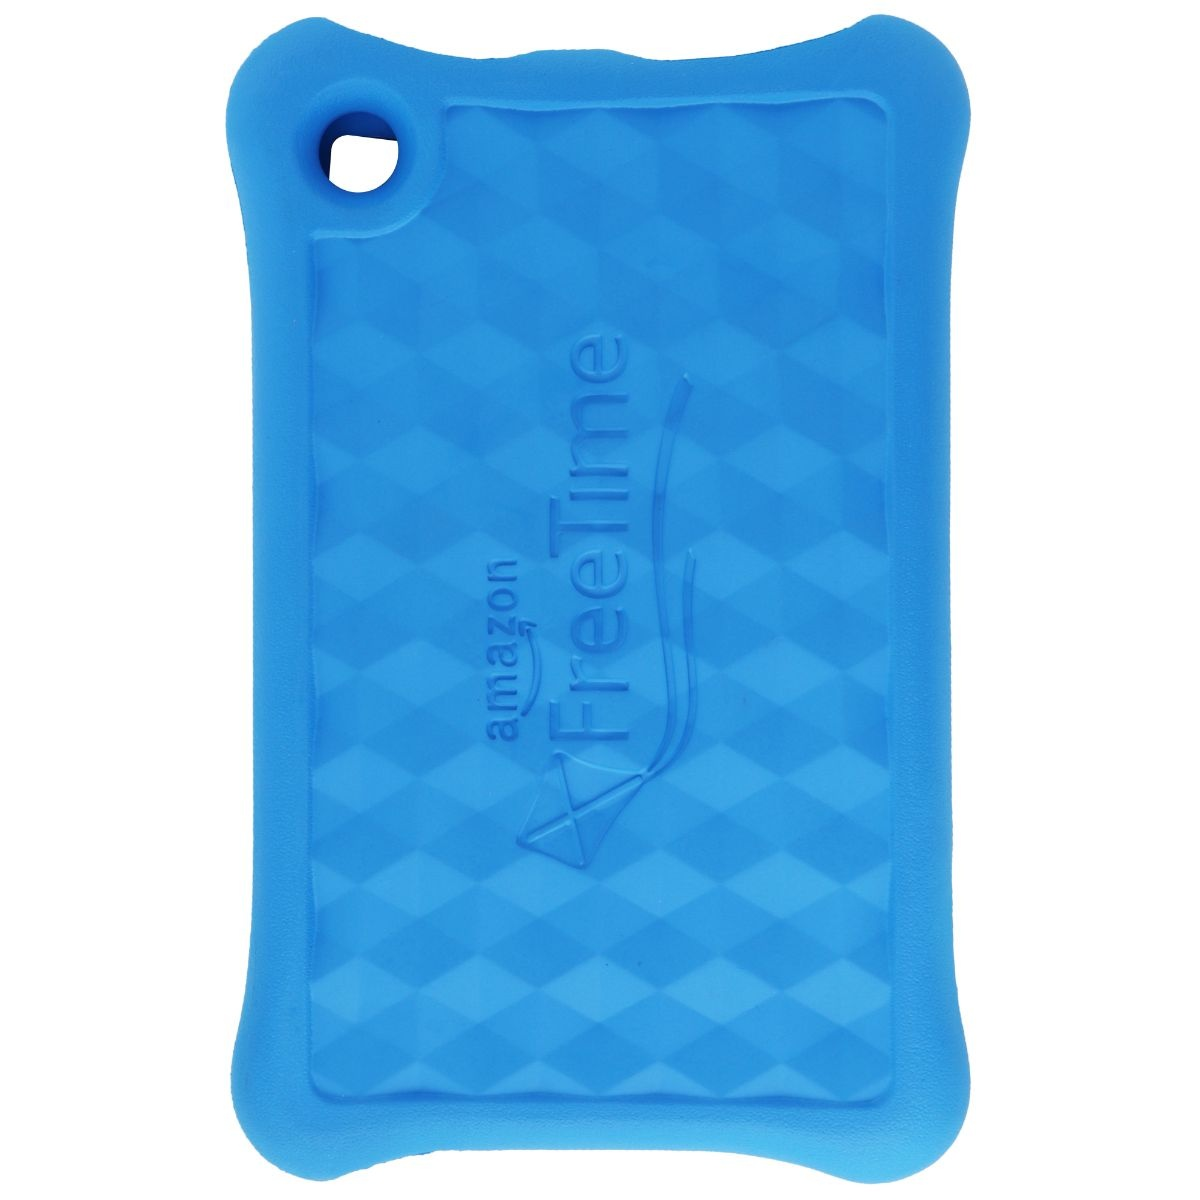 Amazon Kid-Proof Case for Amazon Fire 7 Tablet (7th Generation) - Blue